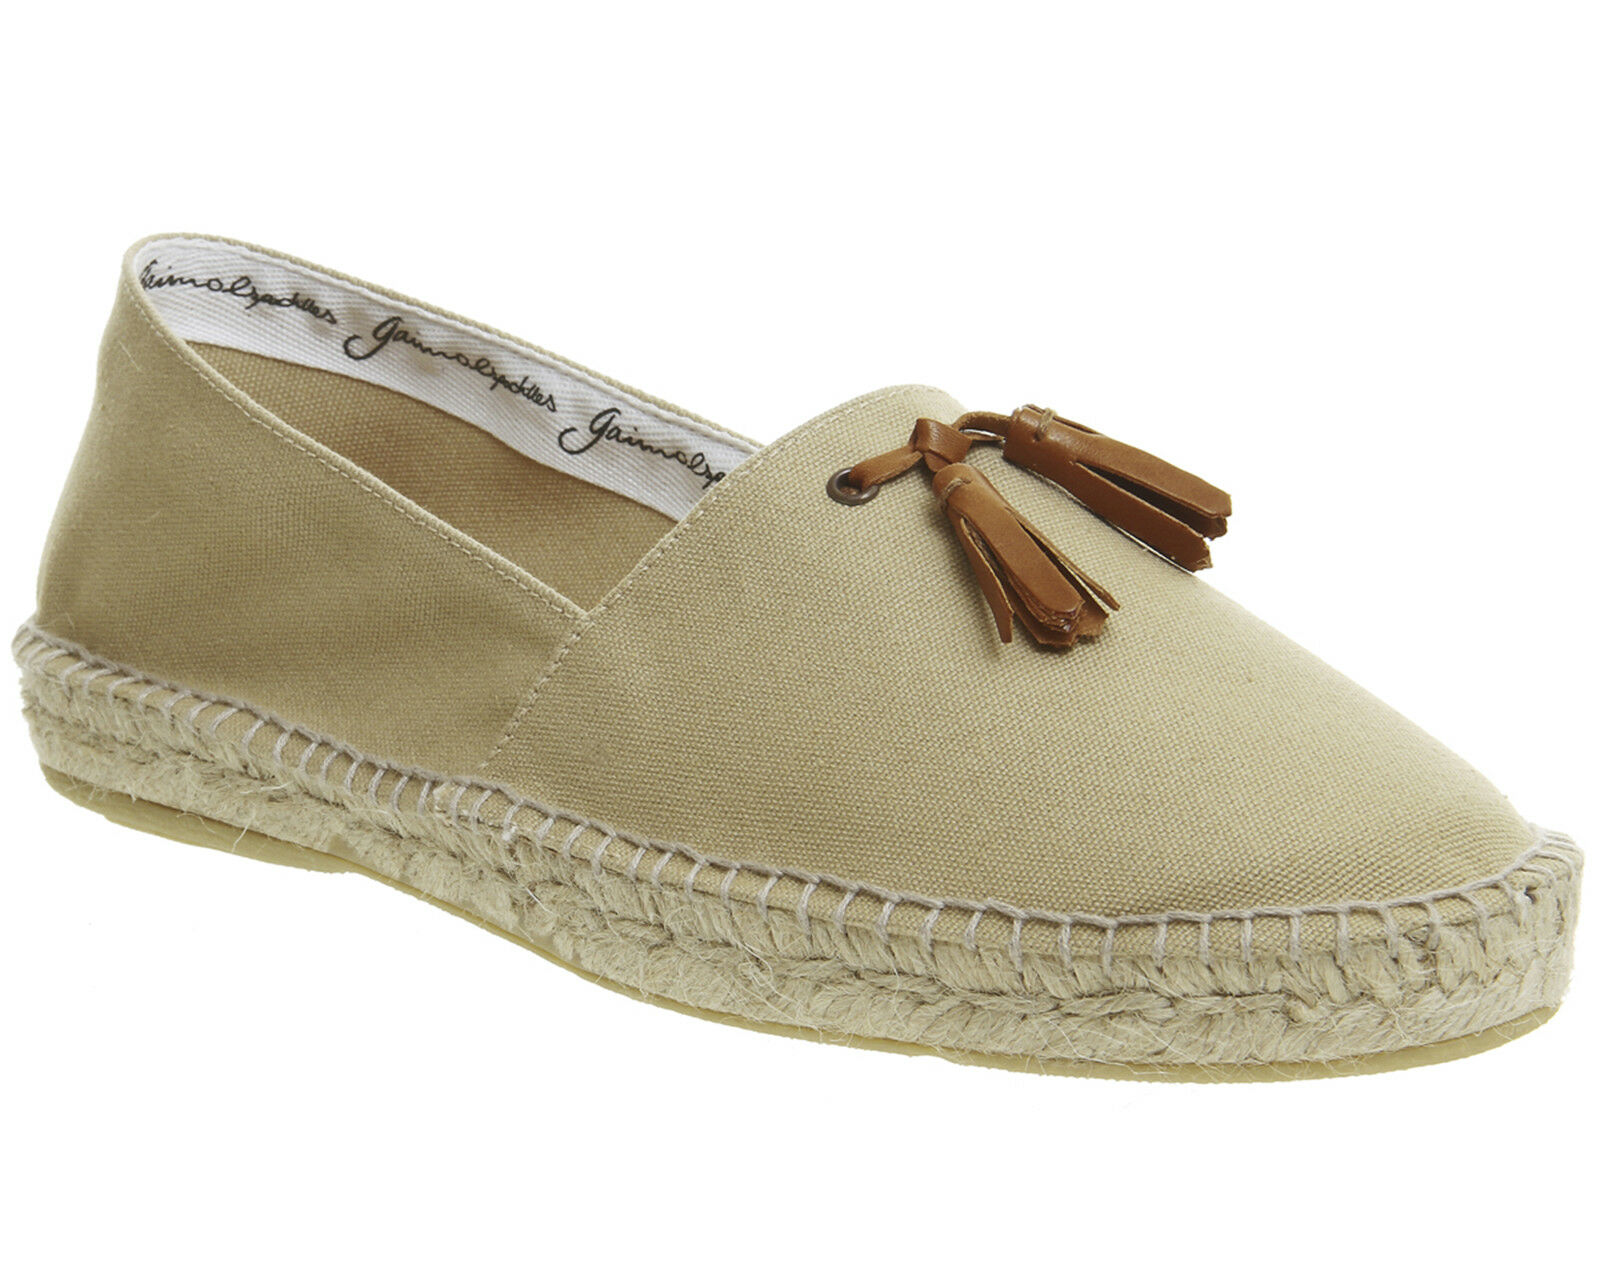 Mens Poste Felice Tassel Espadrilles Beige Canvas Casual shoes